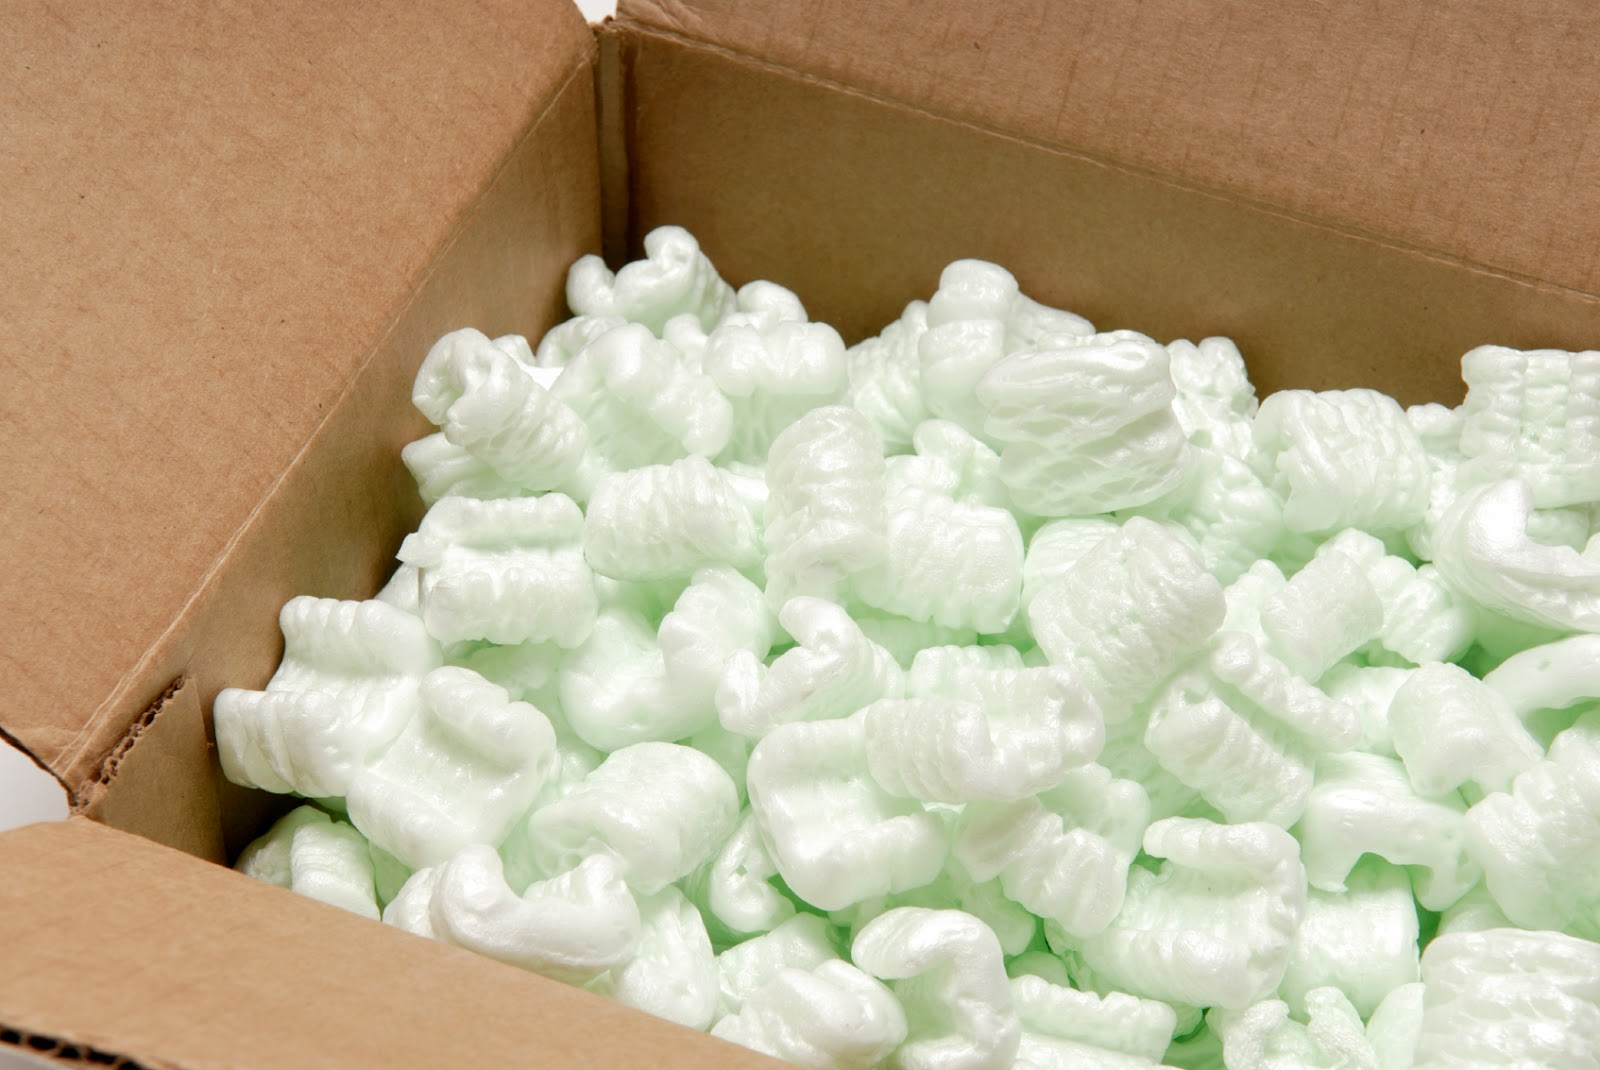 Recycling Works Are Packing Peanuts Recyclable